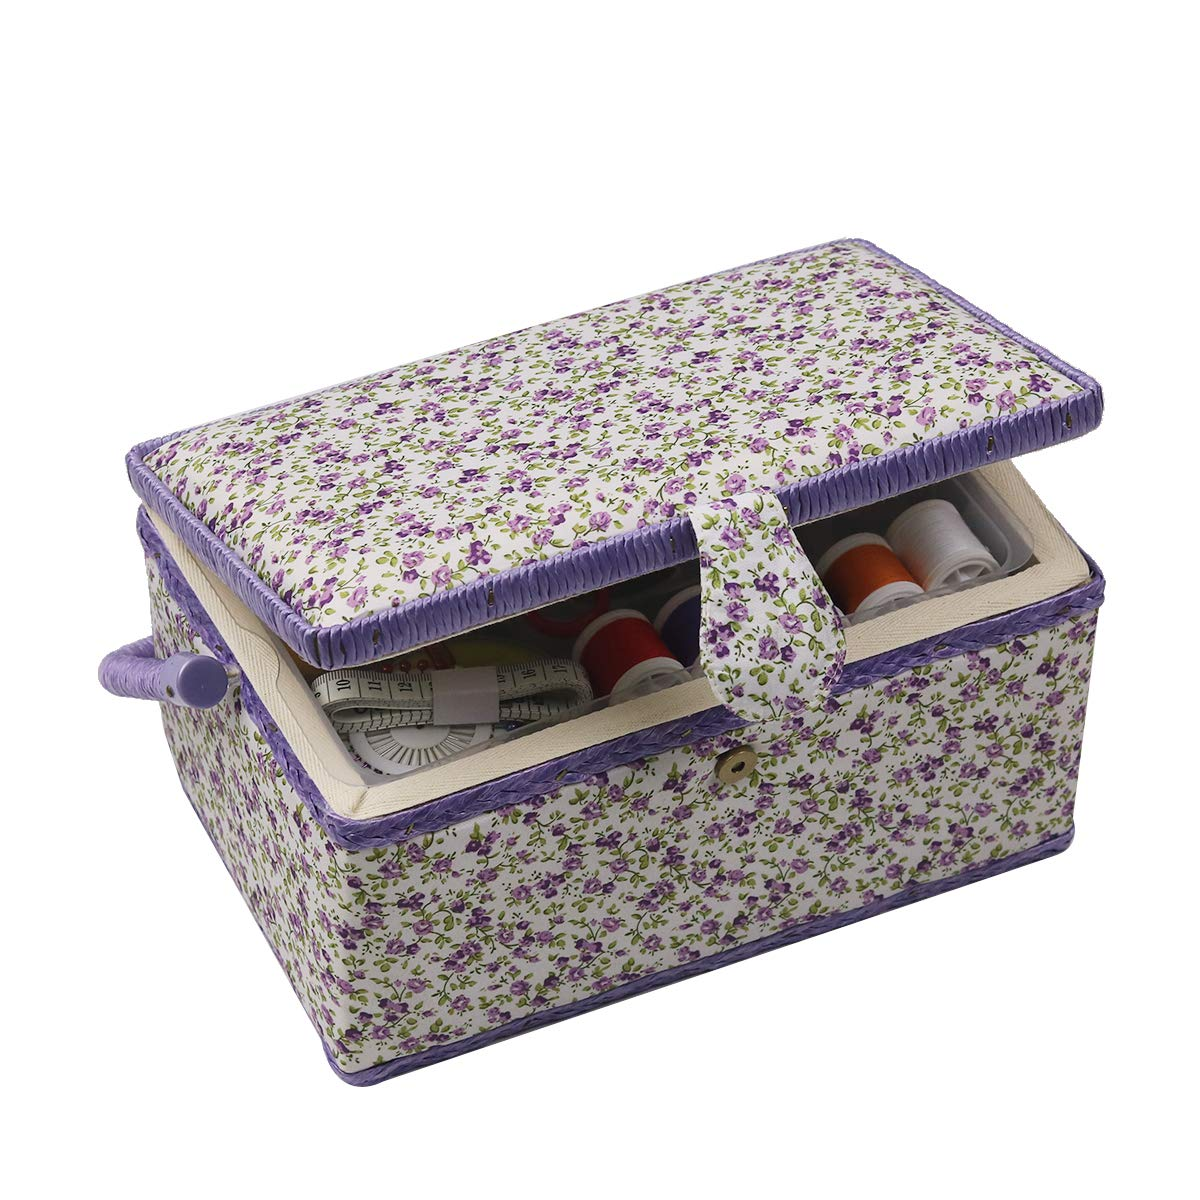 Ideal for Needles Sewing Supplies Organizer Sewing Kit Storage Container Sewing Basket Tape Measure Scissor Purple Thimble and Other Sewing Accessories Thread